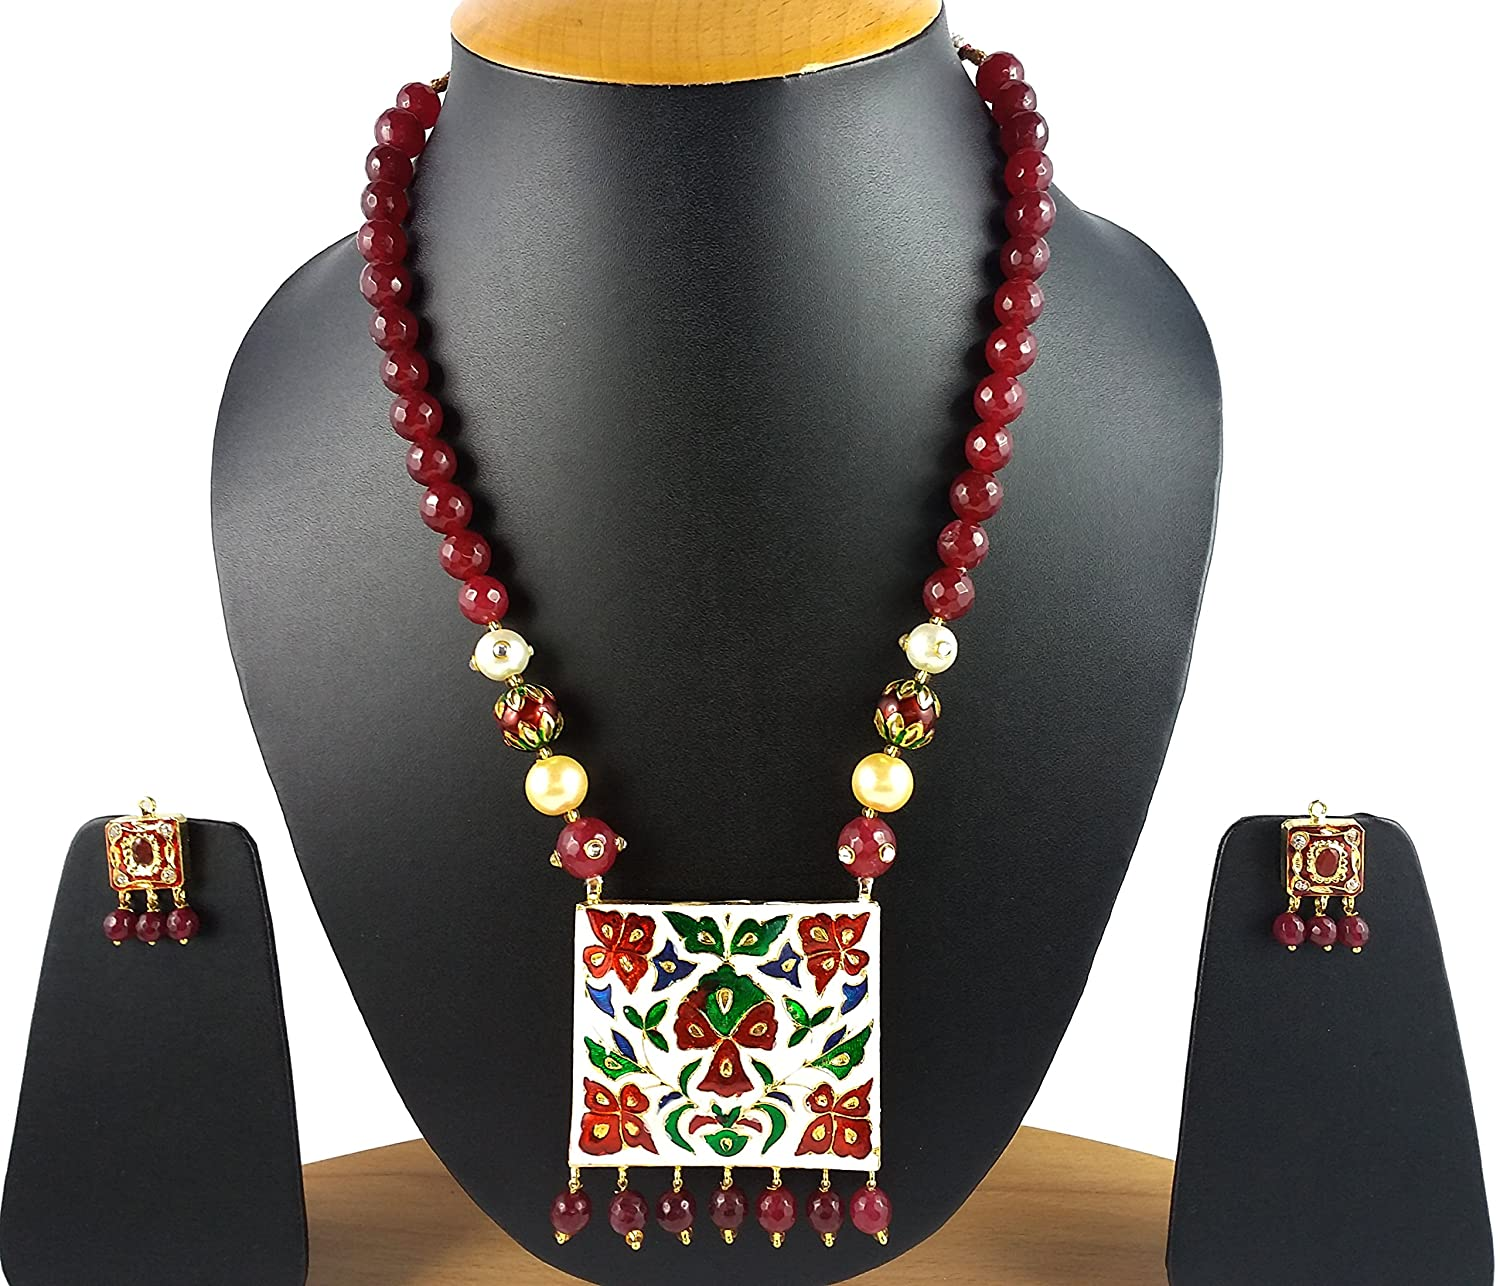 artist designera blog in beads designer of bead clay ceramic all jewelry one